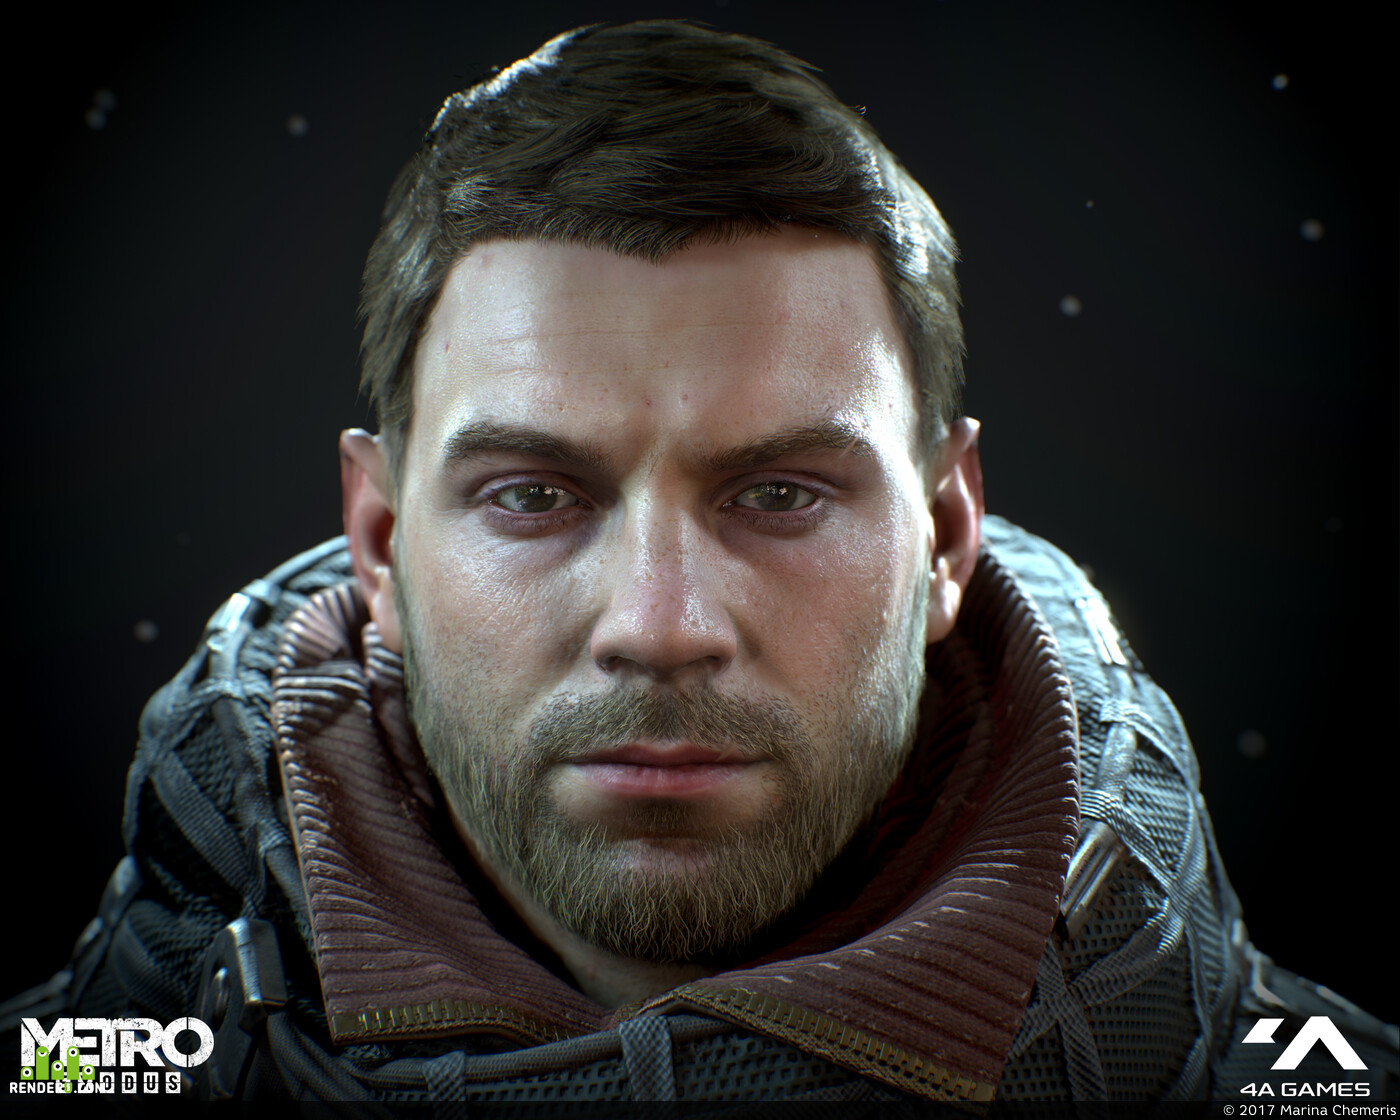 3d, portait, Character, Компьютерная графика/CG, gameart, gamedevelopment, game character, Game-Art, game low poly